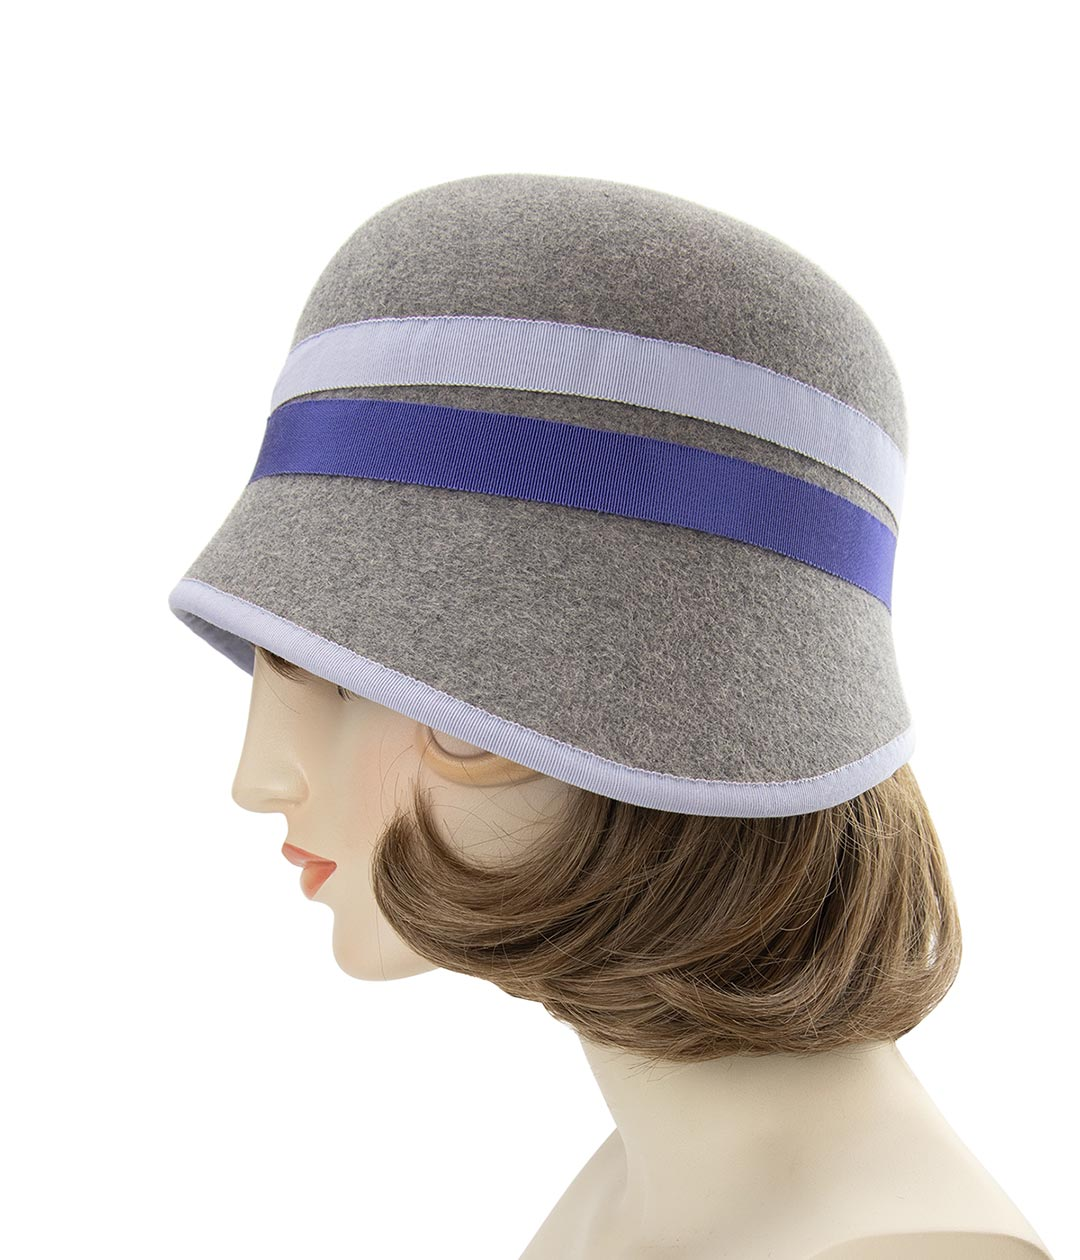 Left side view of heather gray felt cloche hat with blue ribbons